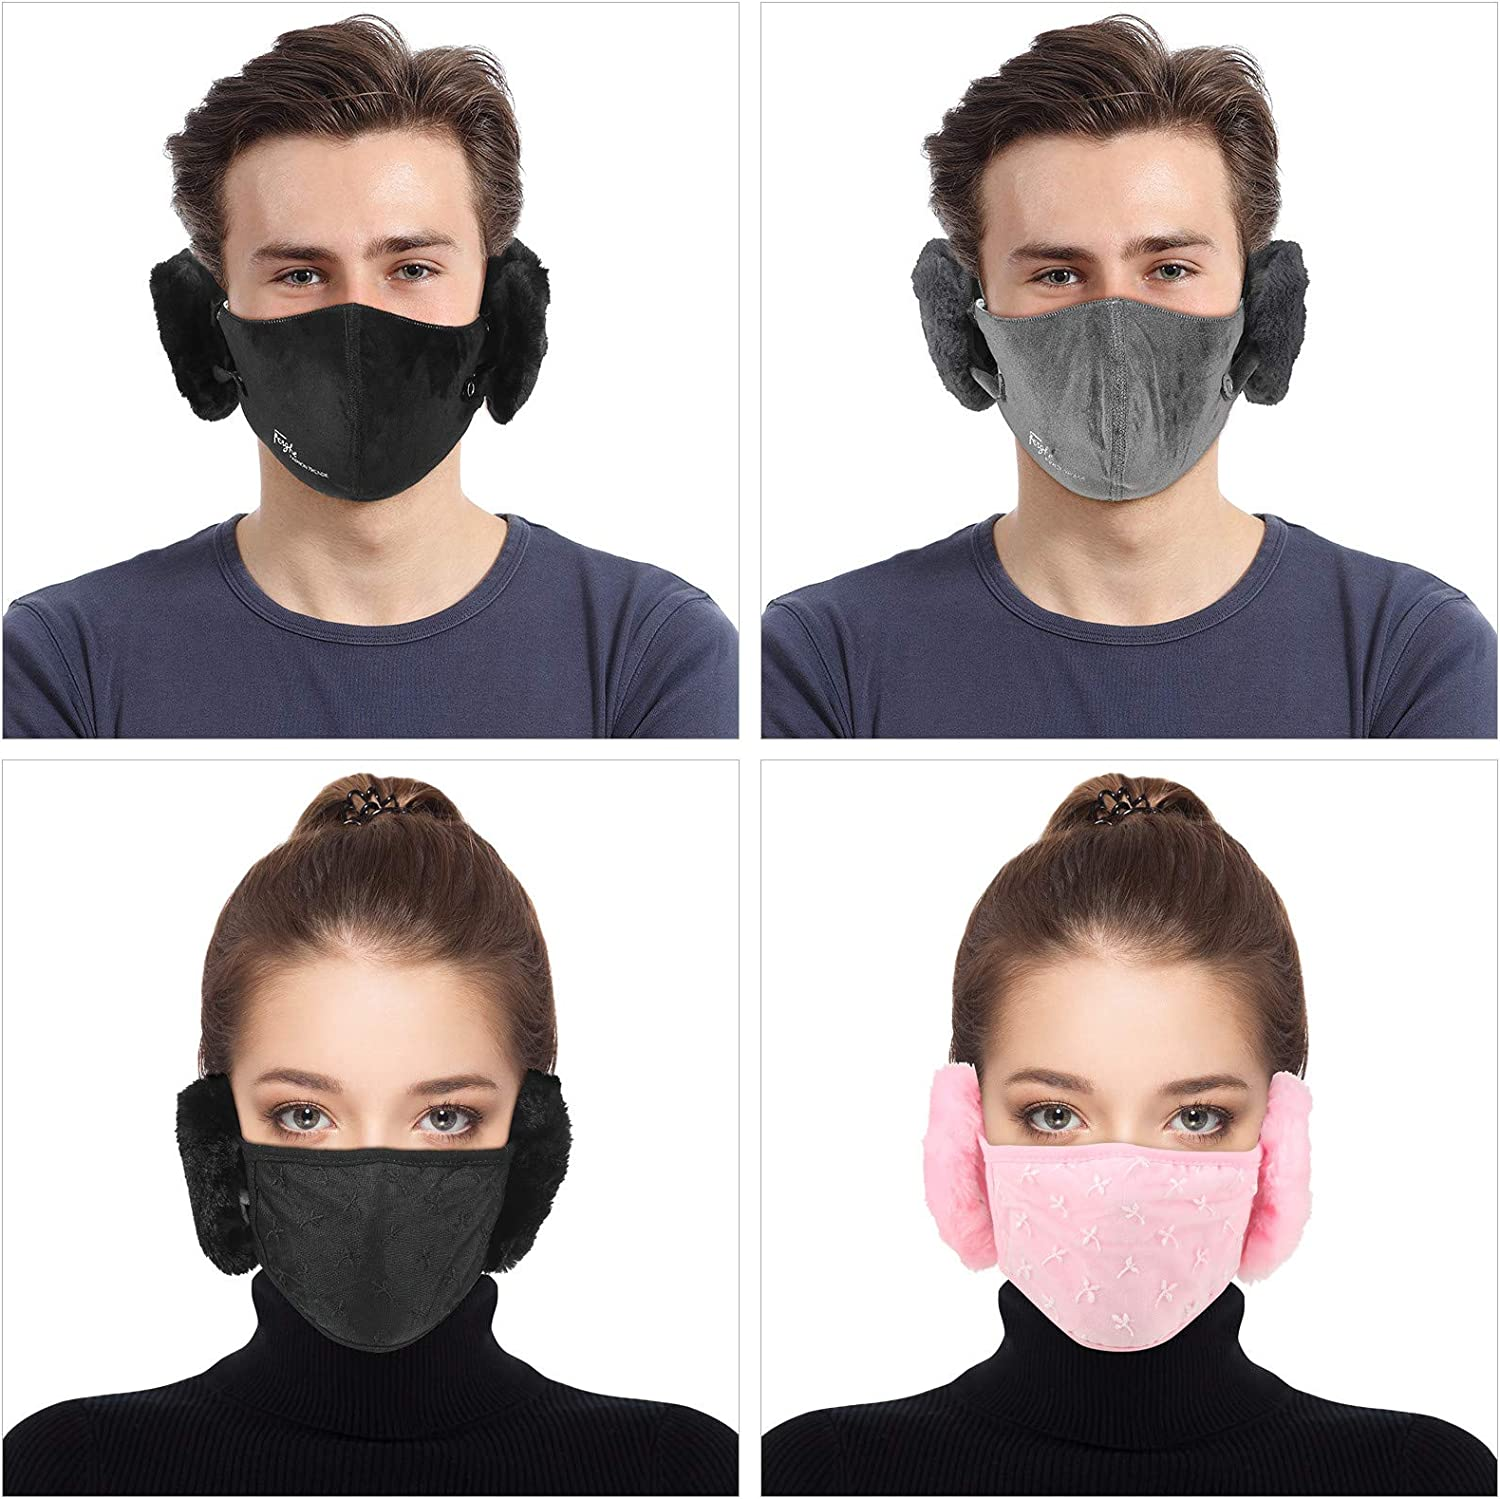 Syhood 4 Pieces Winter Face Covering Bandanas with Ear Warmers for Women Men Outdoor Balaclava Earmuffs